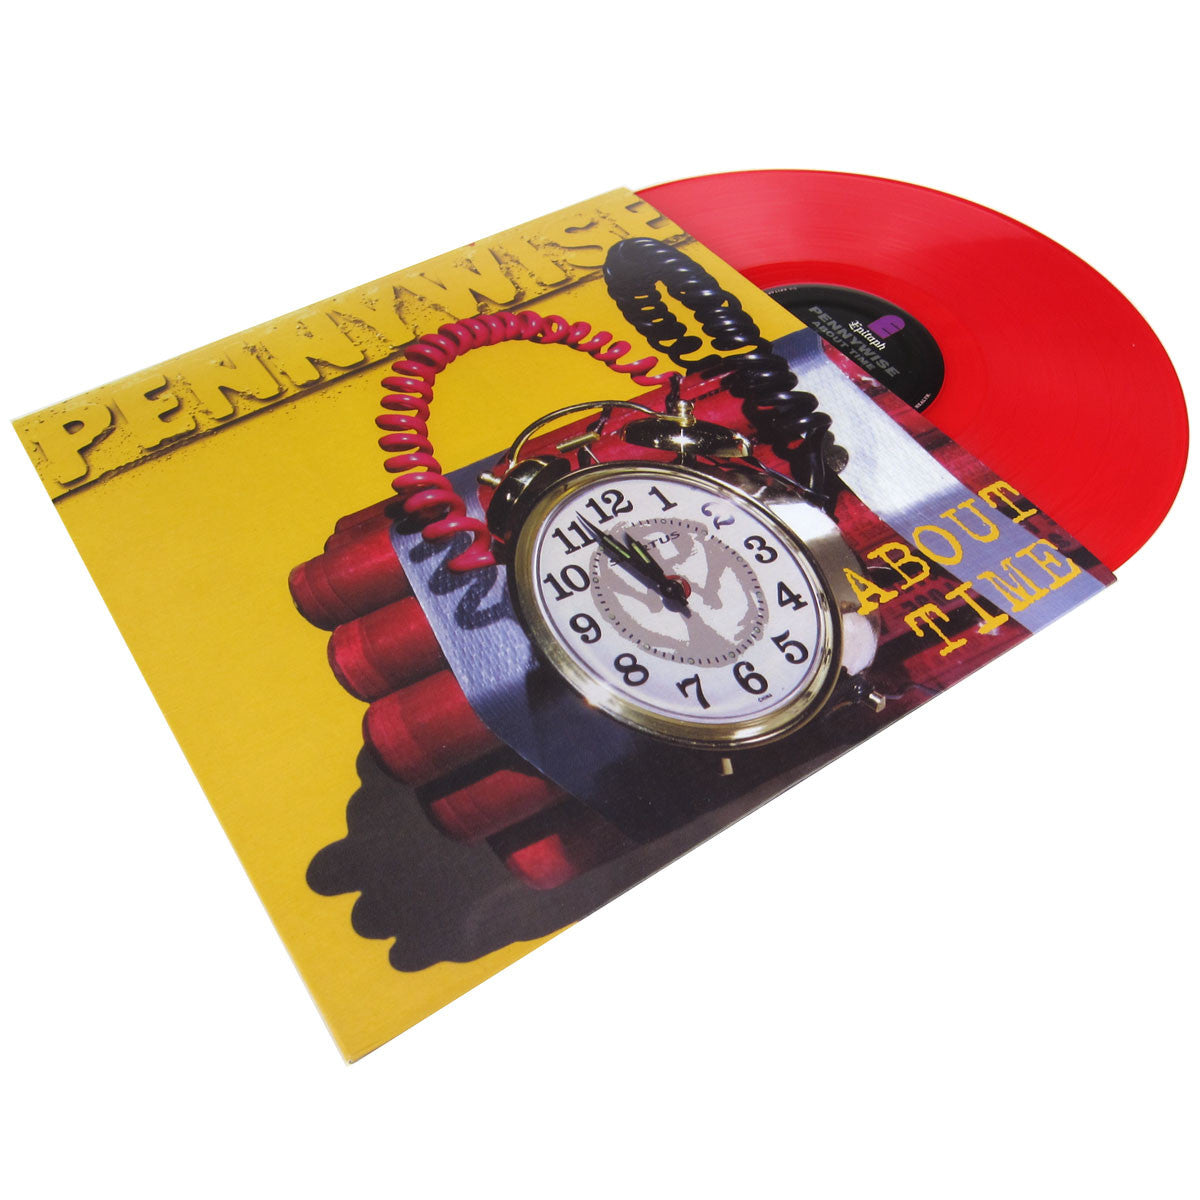 Pennywise: About Time (Limited Edition Red Vinyl) Vinyl LP